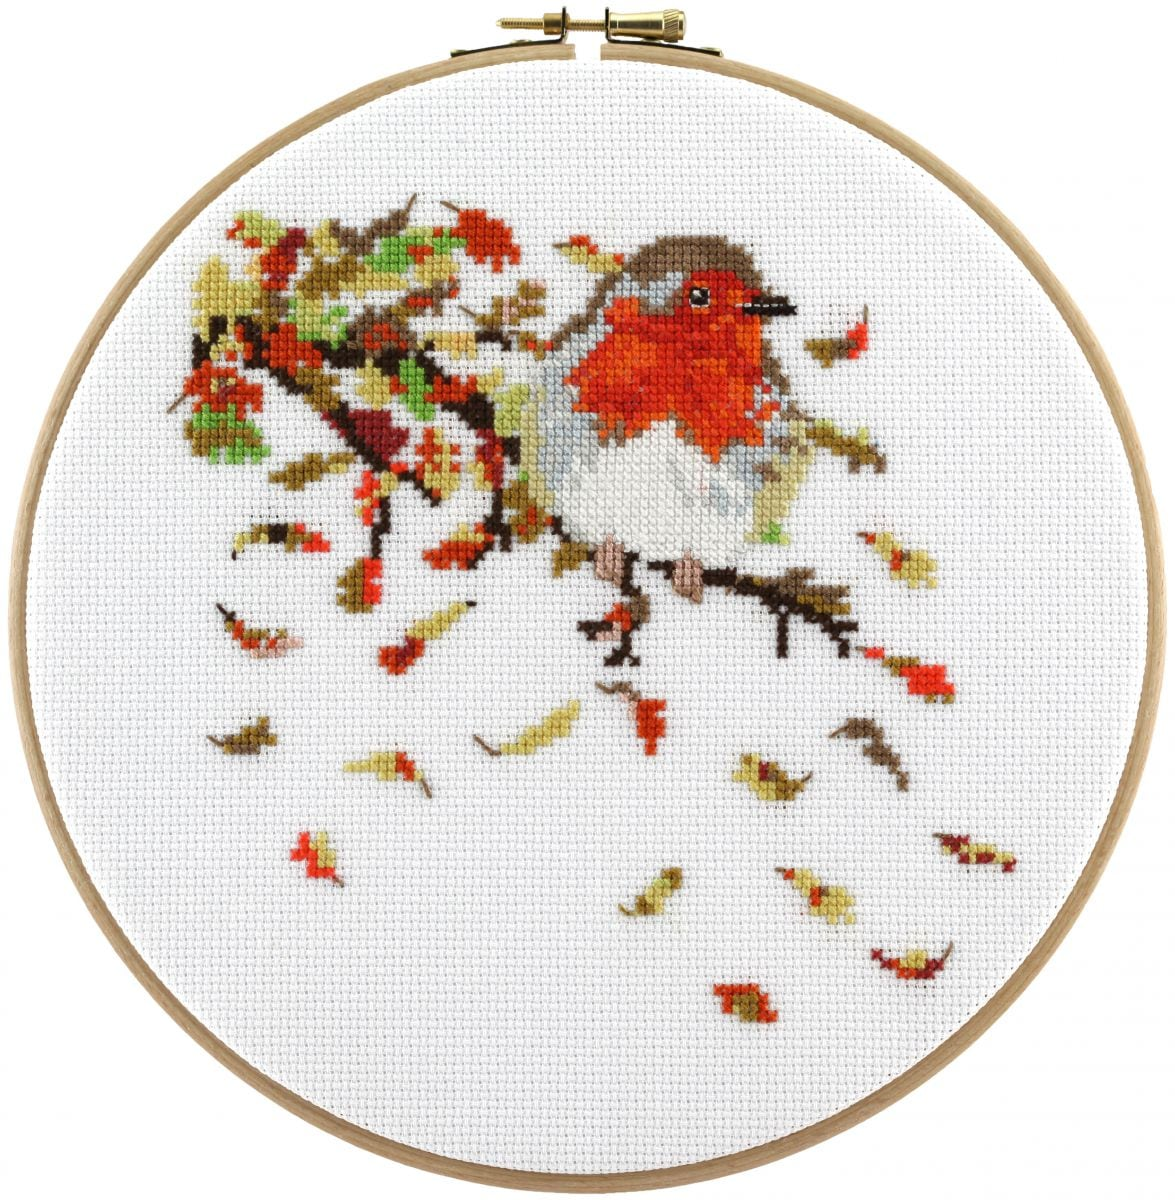 embroidery kit redbreast